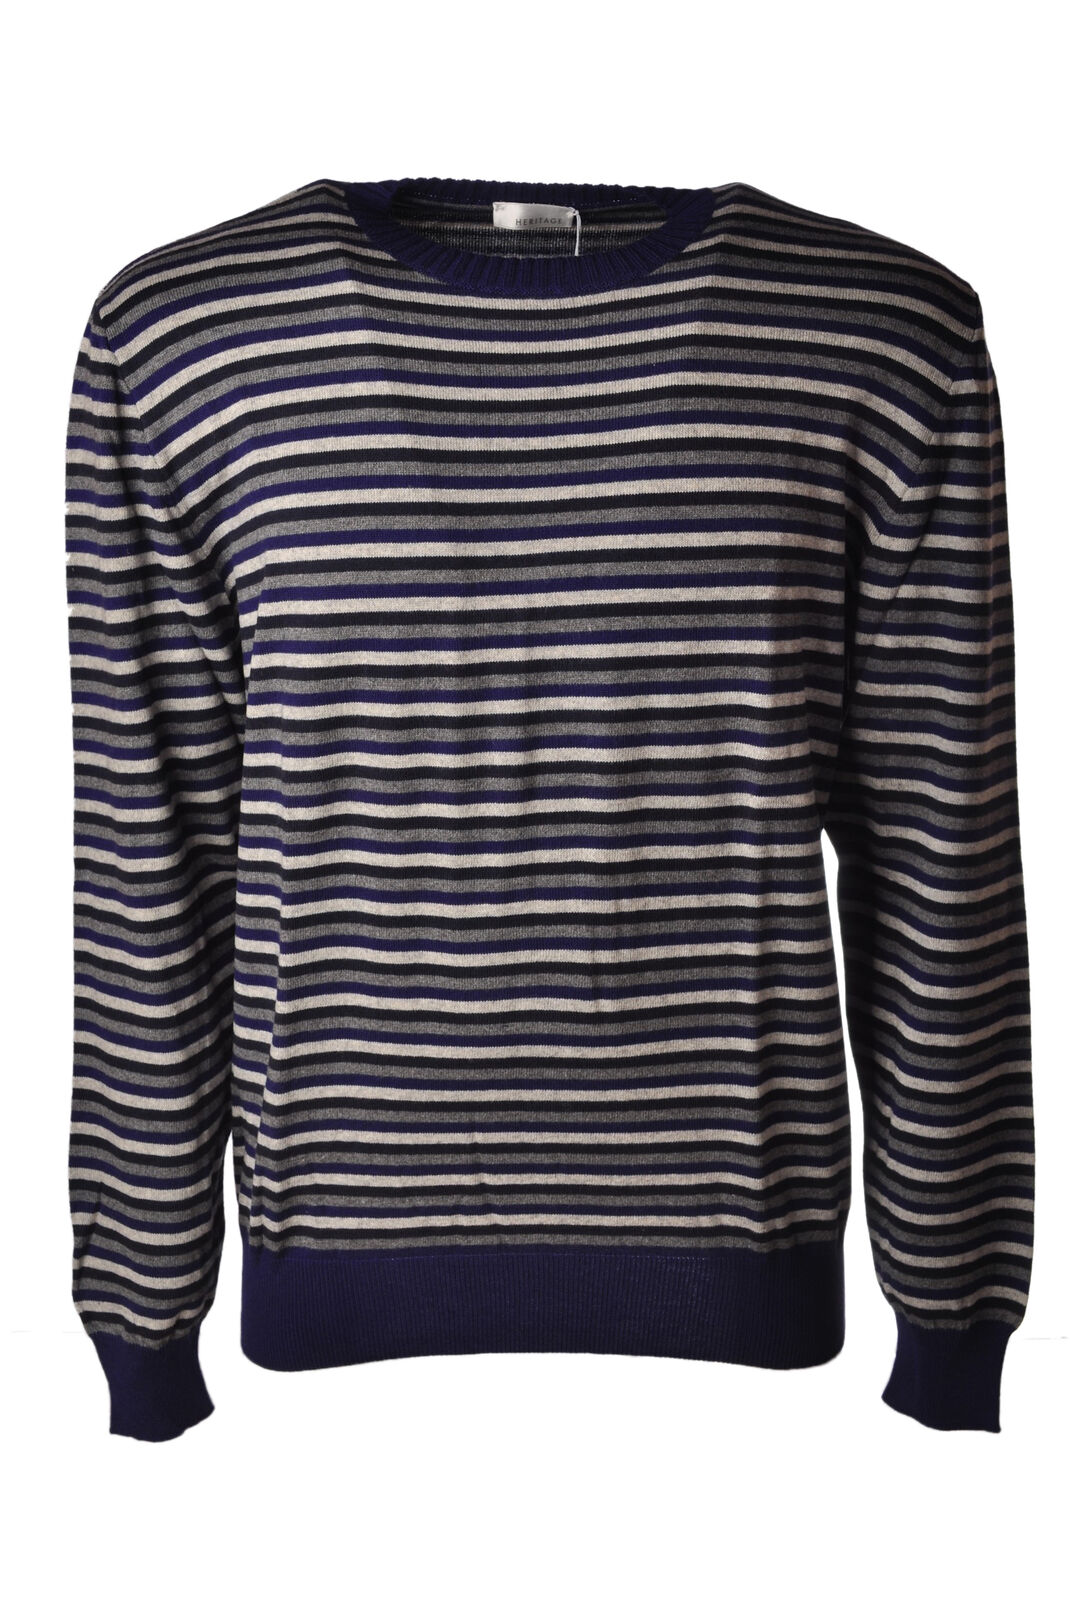 Heritage  -  Sweaters - Male - Fantasy - 4648721A180203